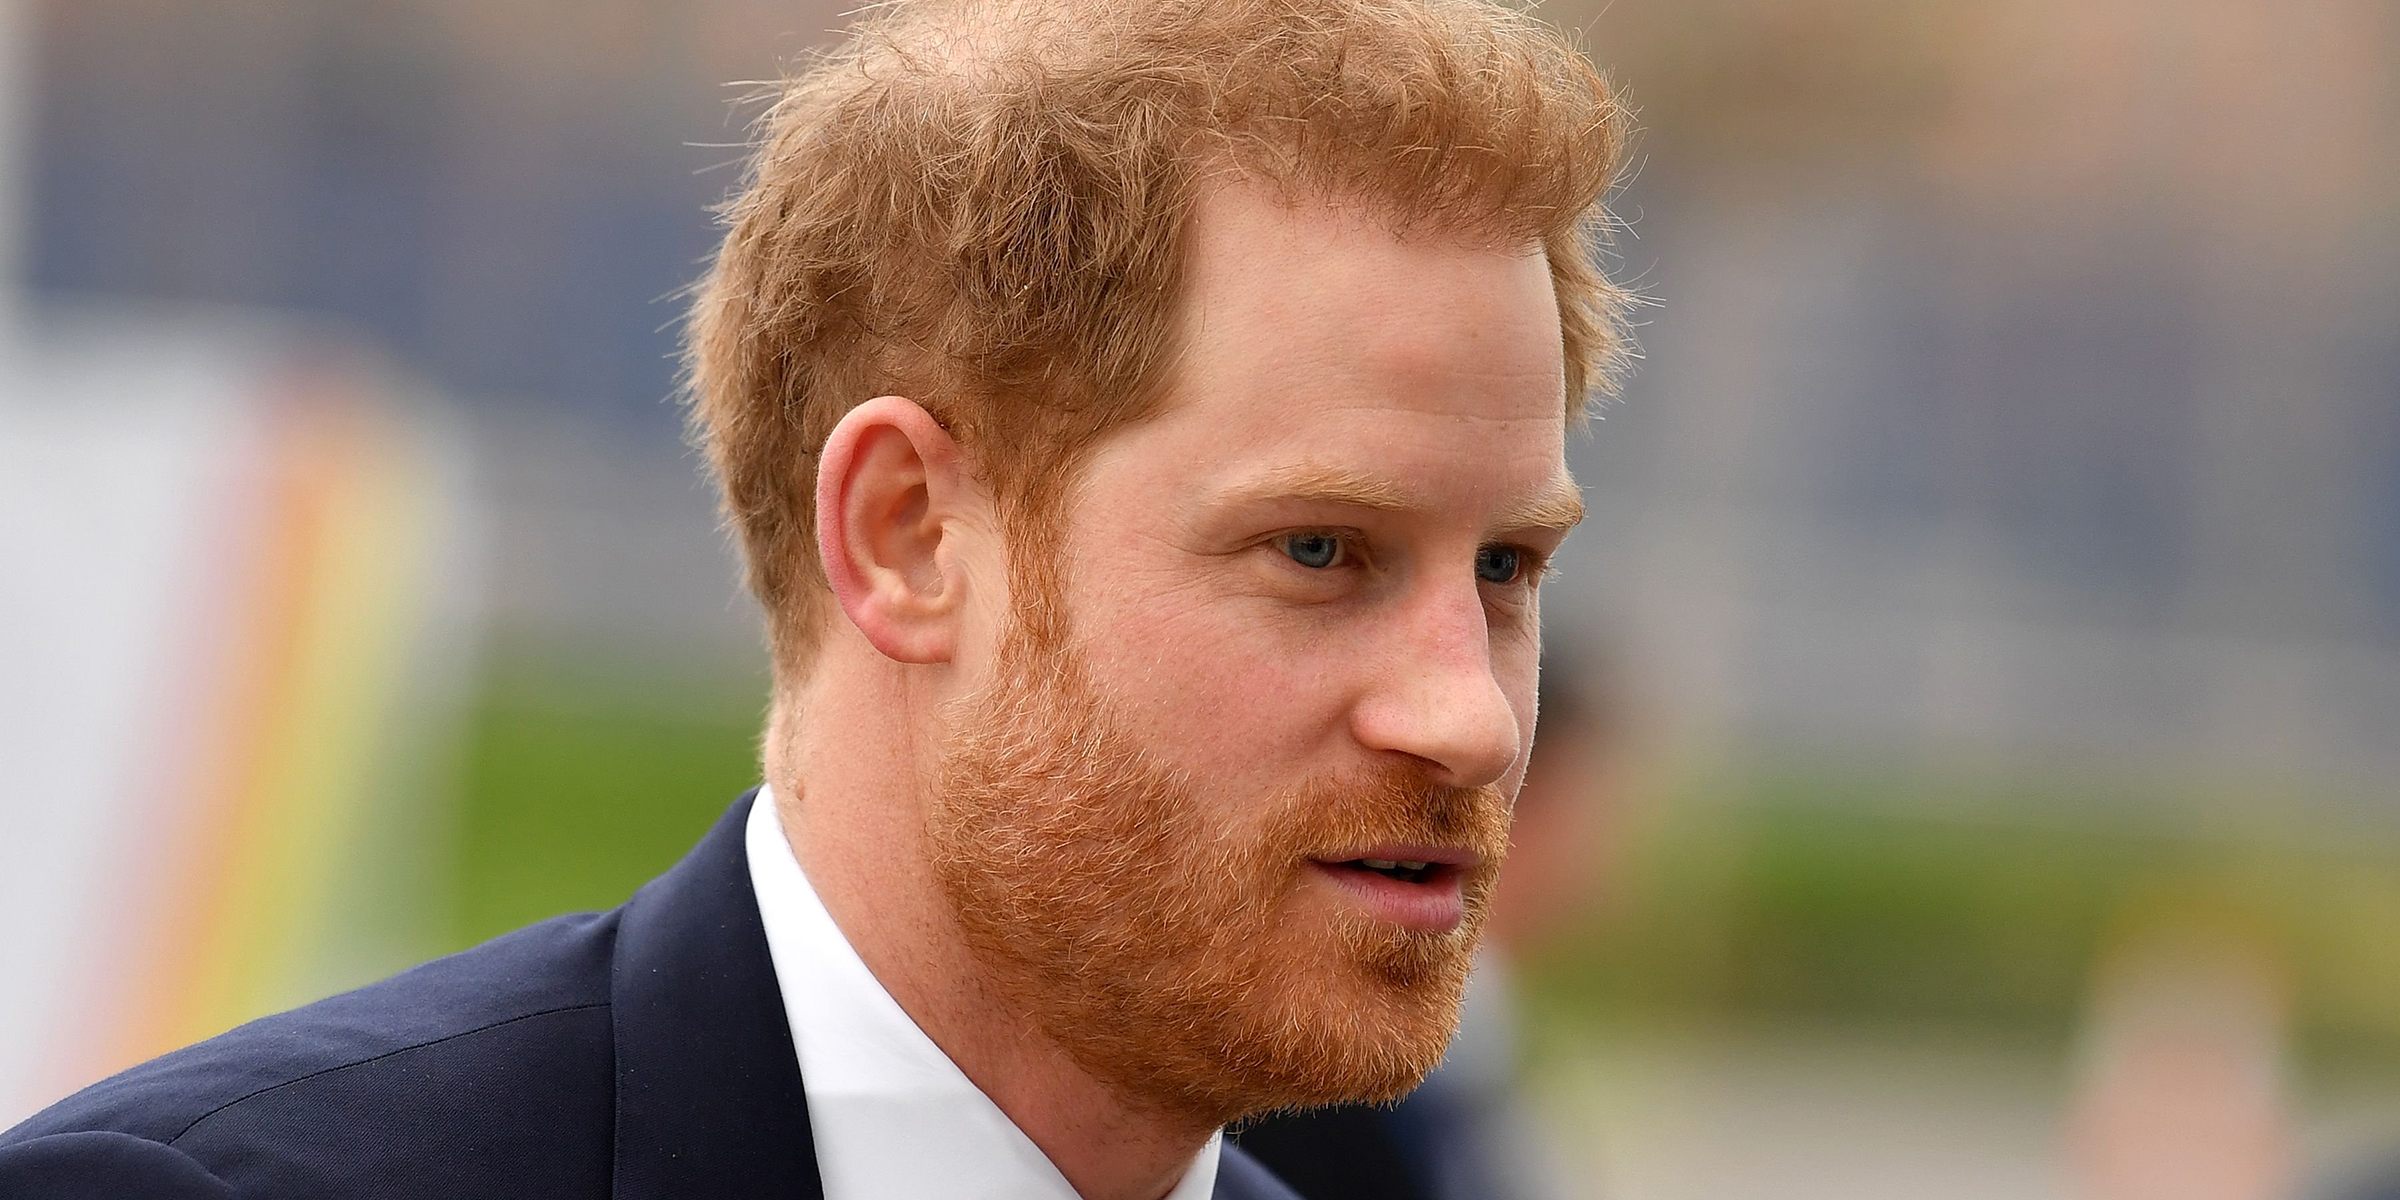 Is Prince Harry still in the British line of succession?